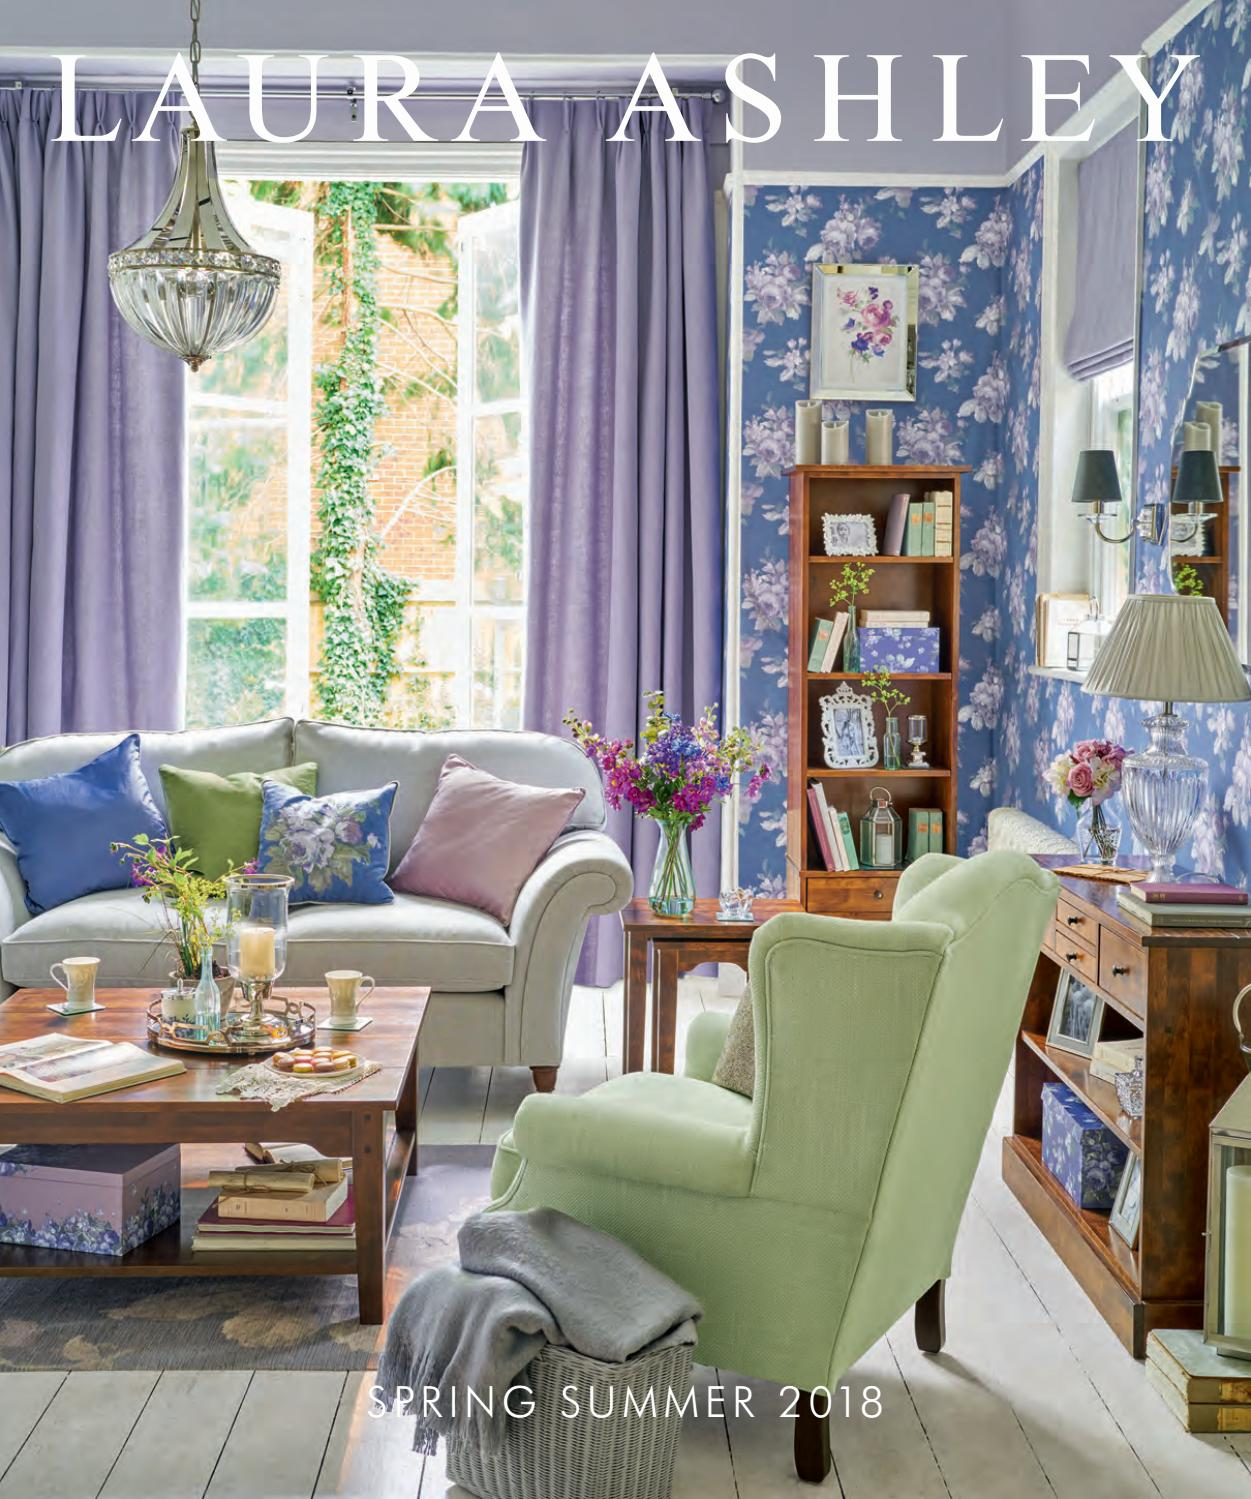 laura ashley - photo #2